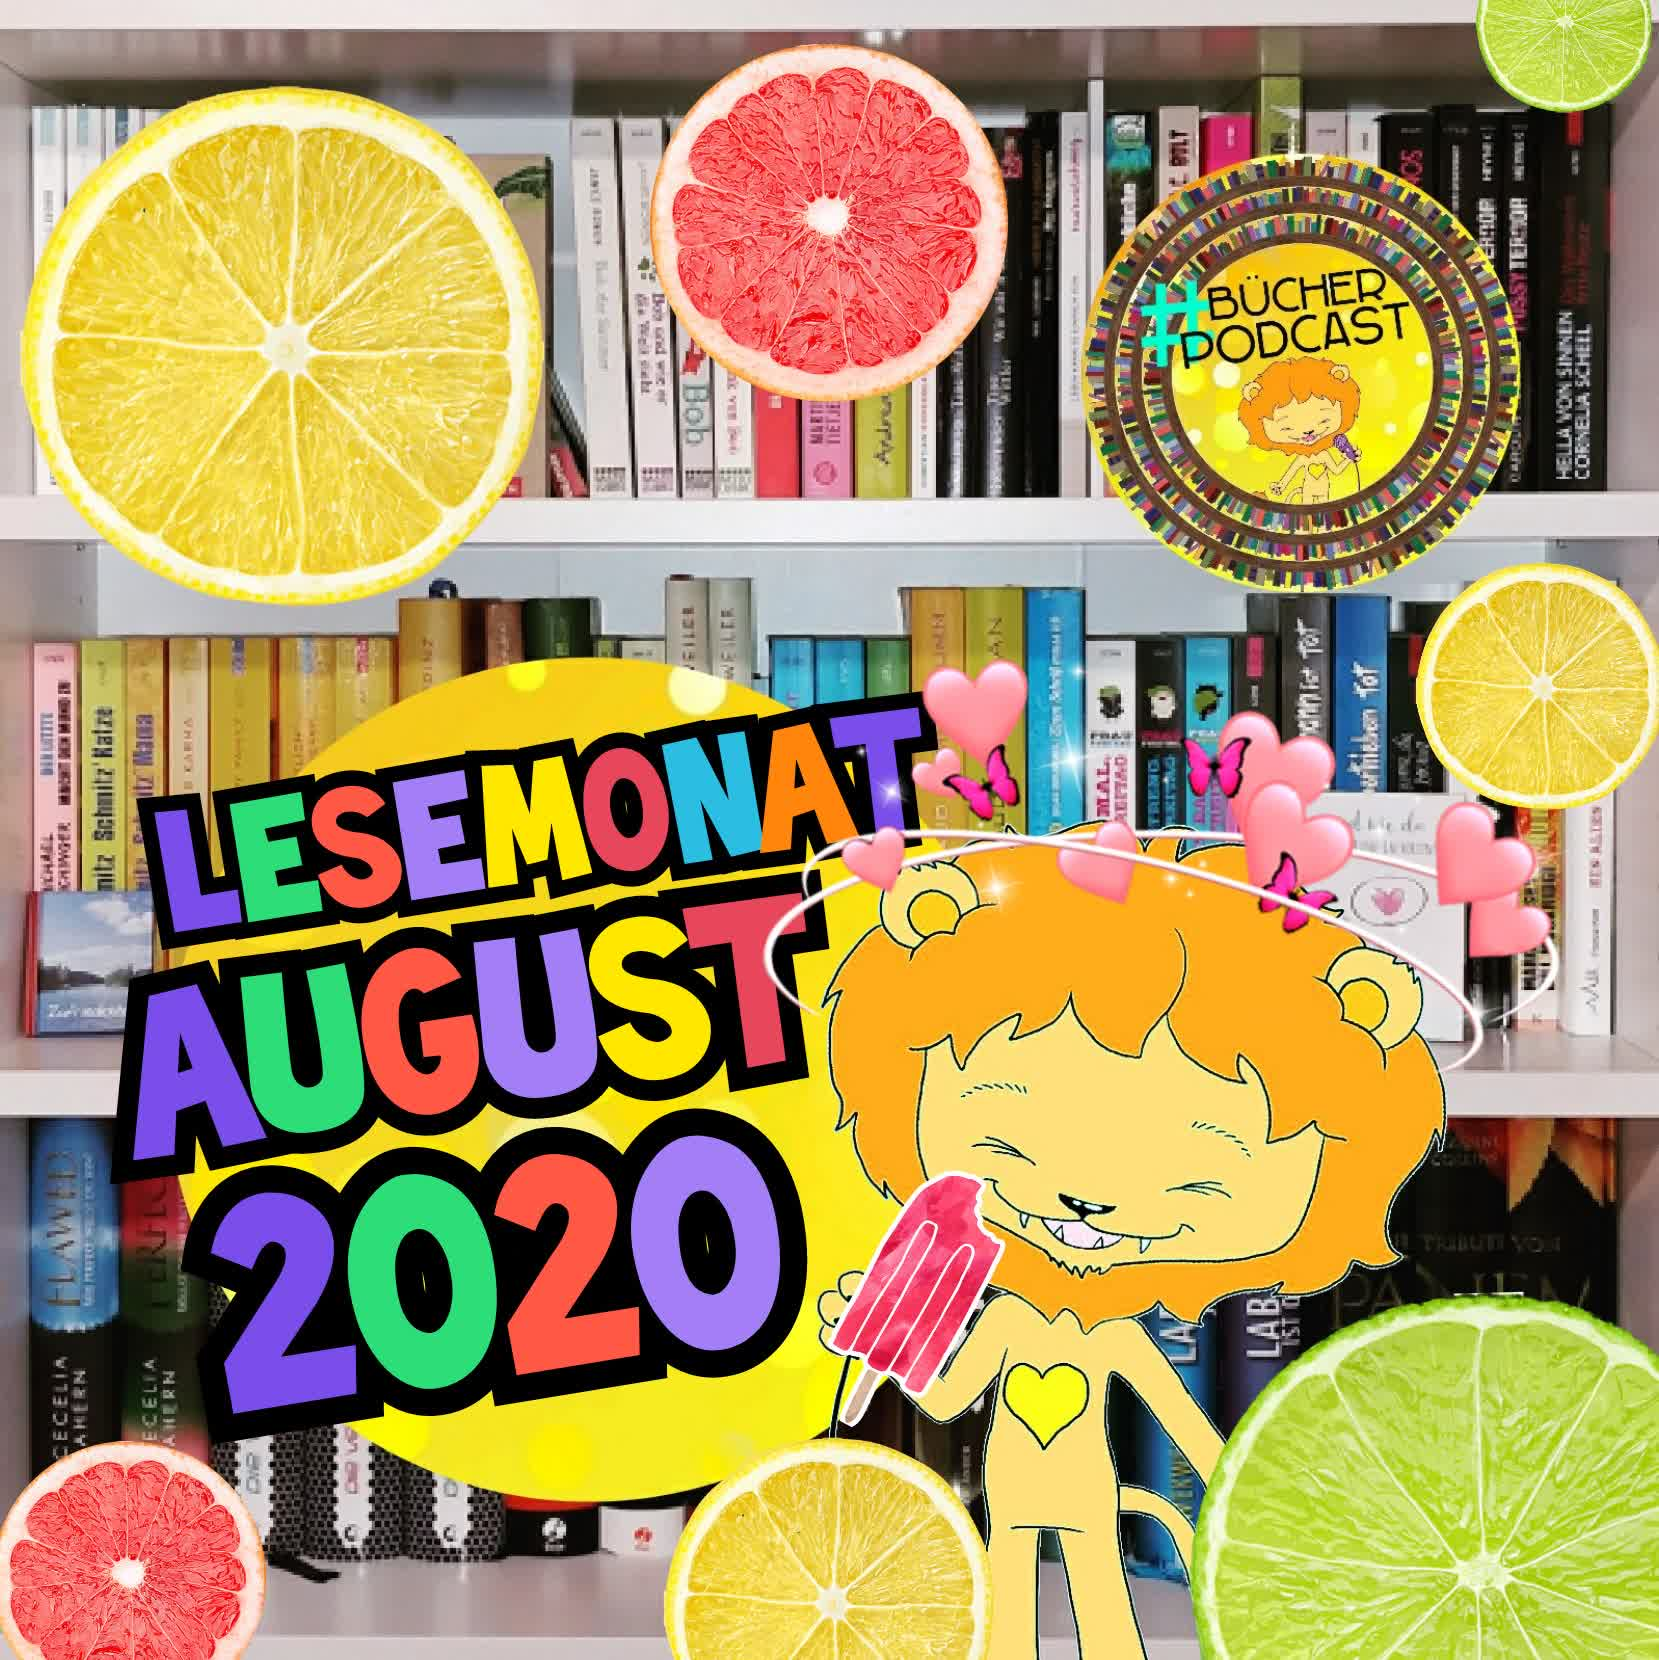 Lesemonat August 2020